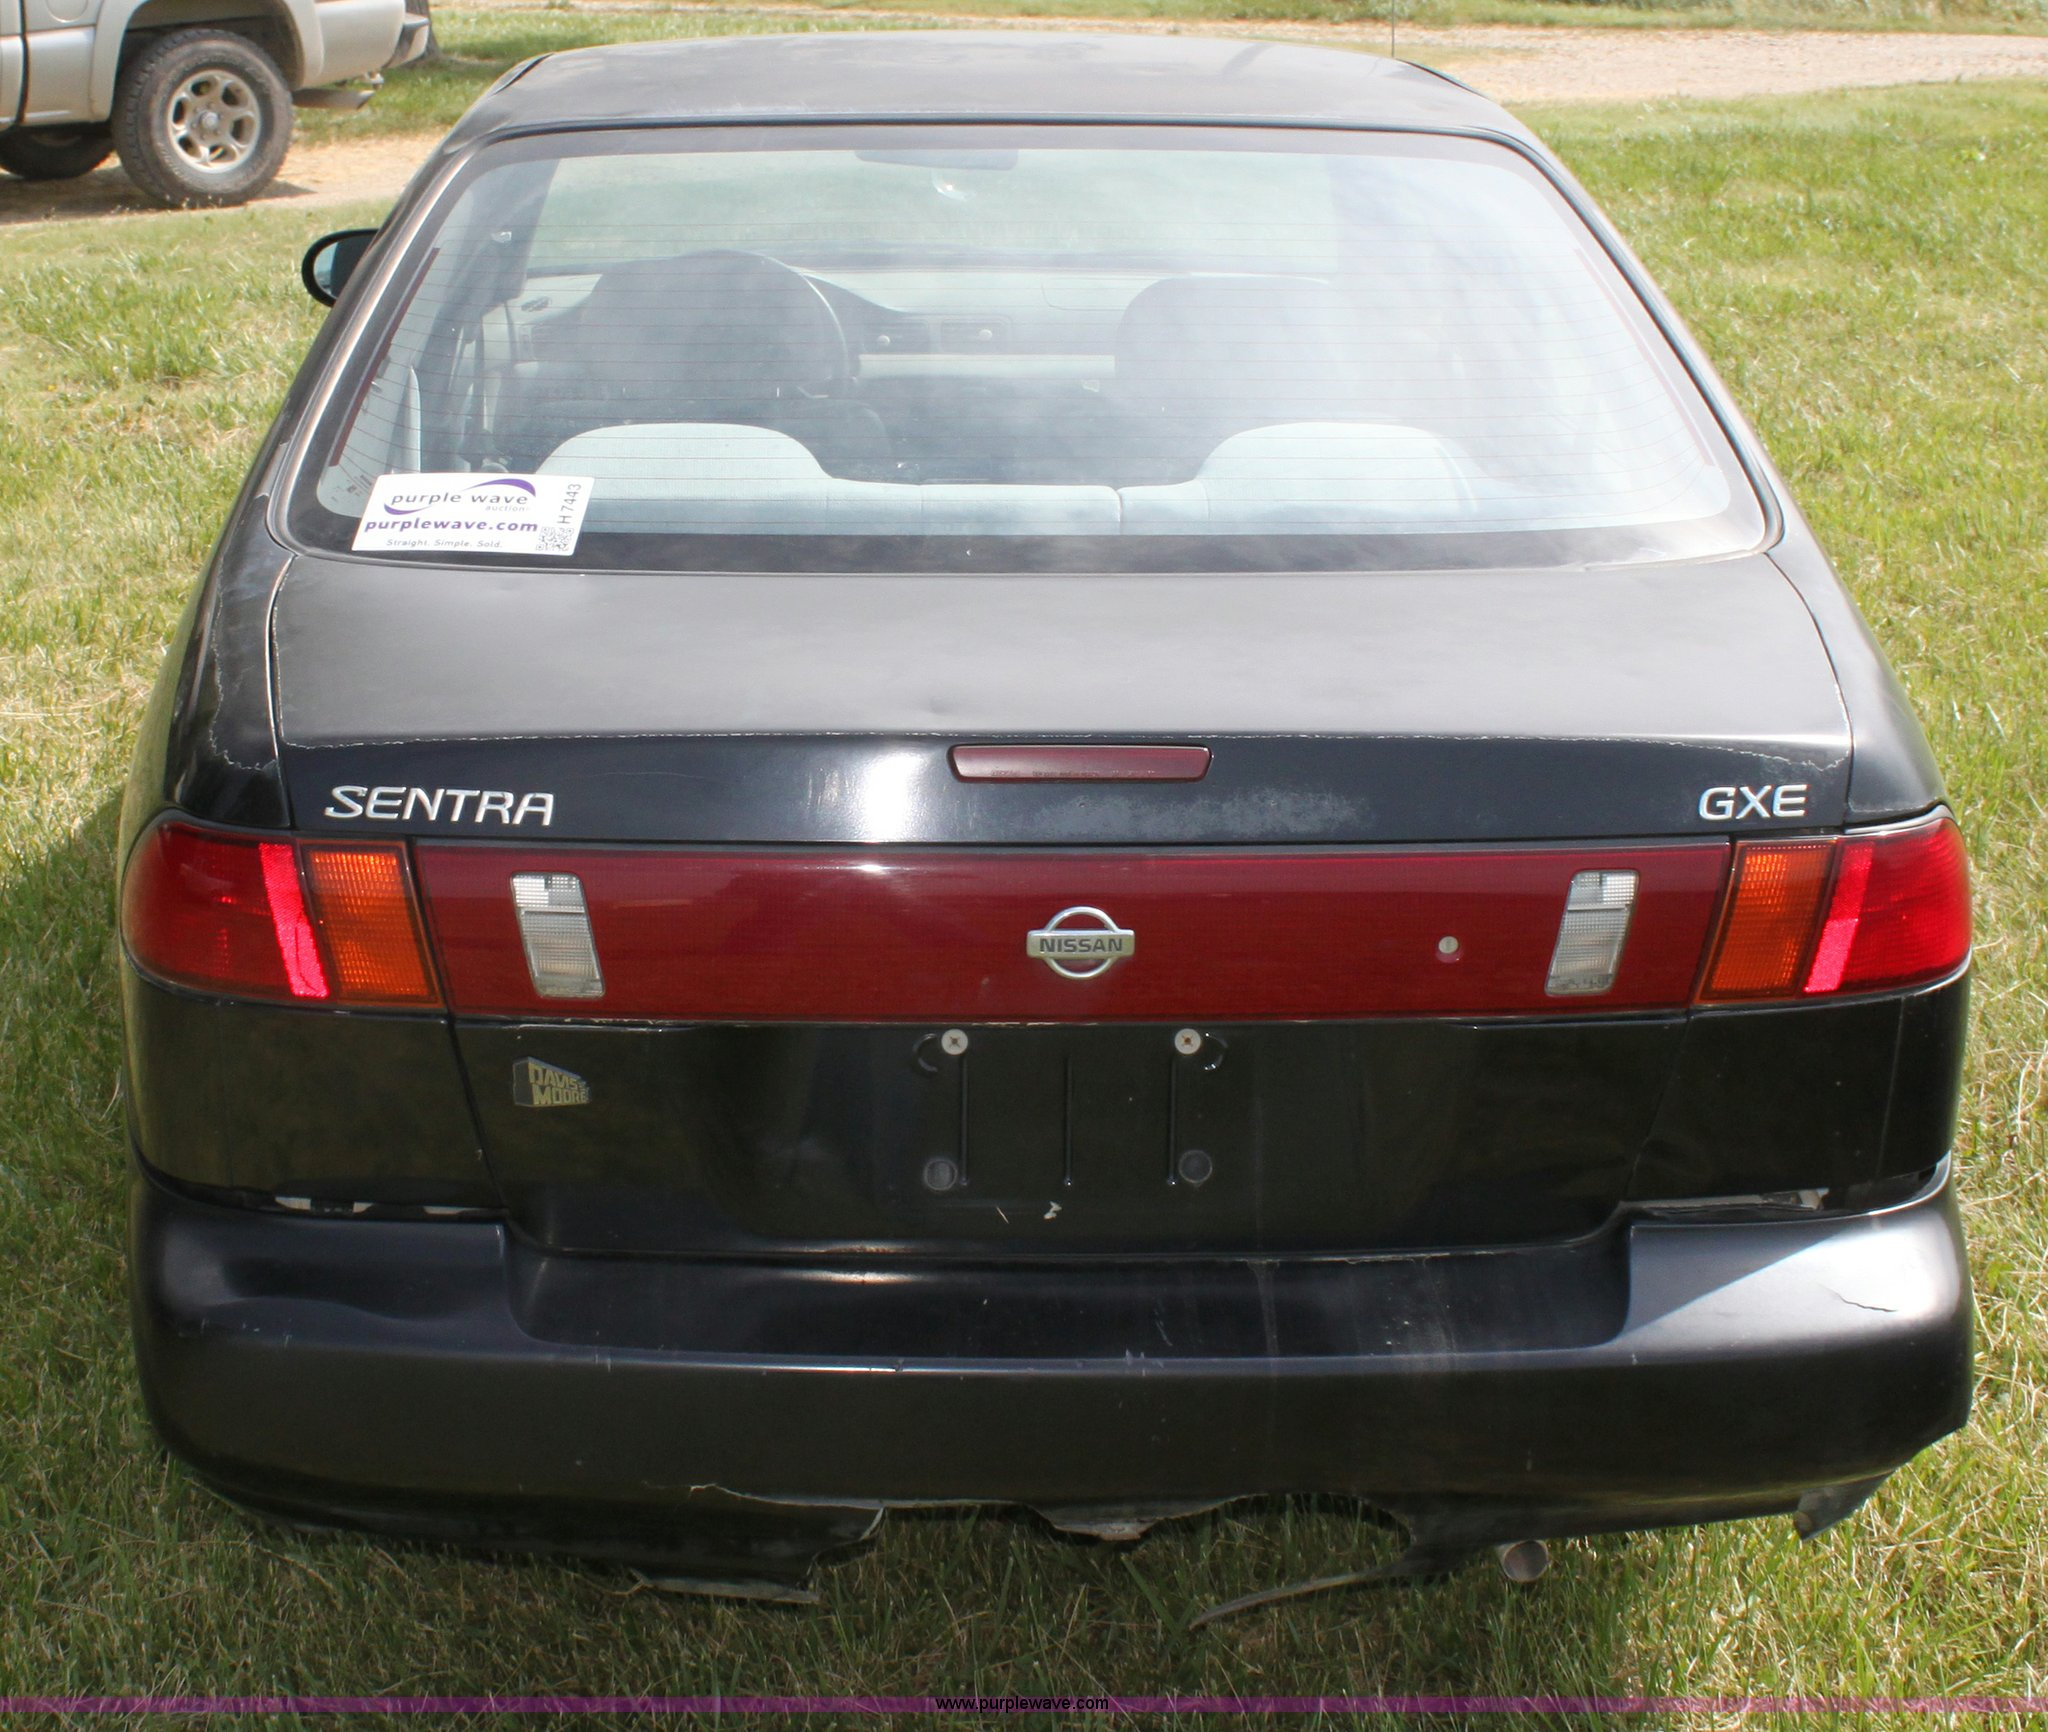 1997 Nissan Sentra Gxe Item H7443 Sold July 10 Midwest Manual Full Size In New Window